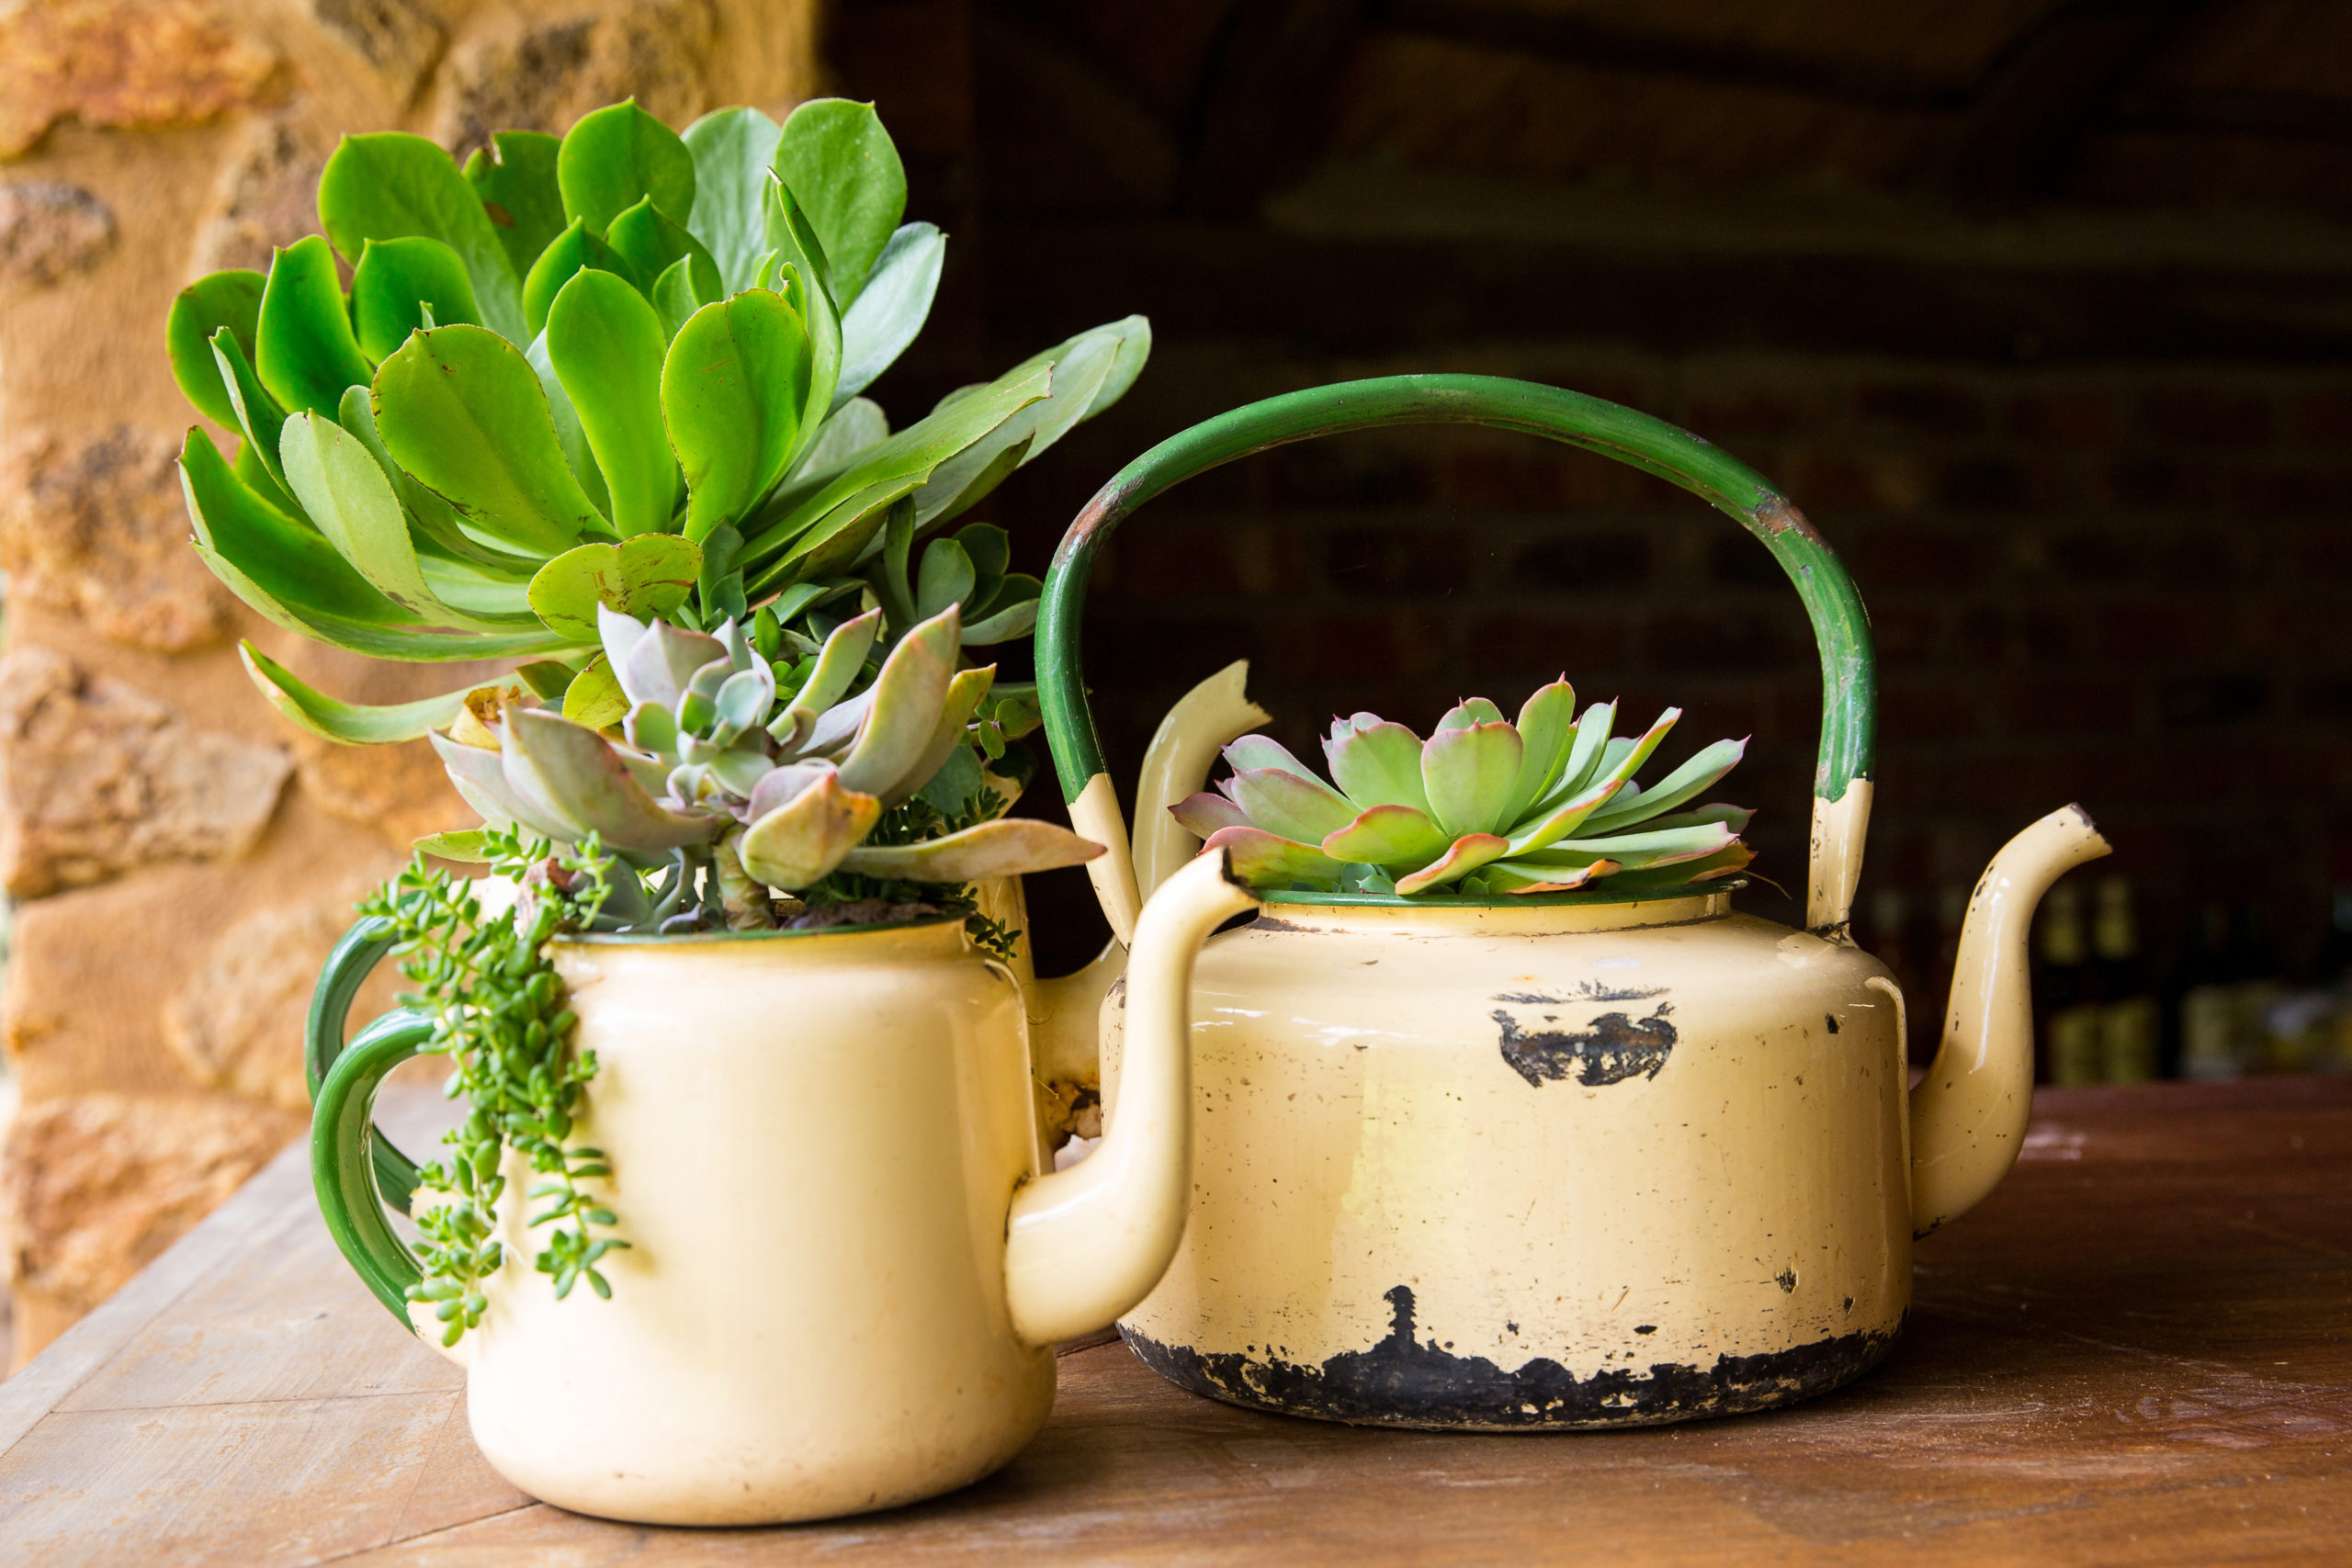 Tea kettles that have been made into flower pots